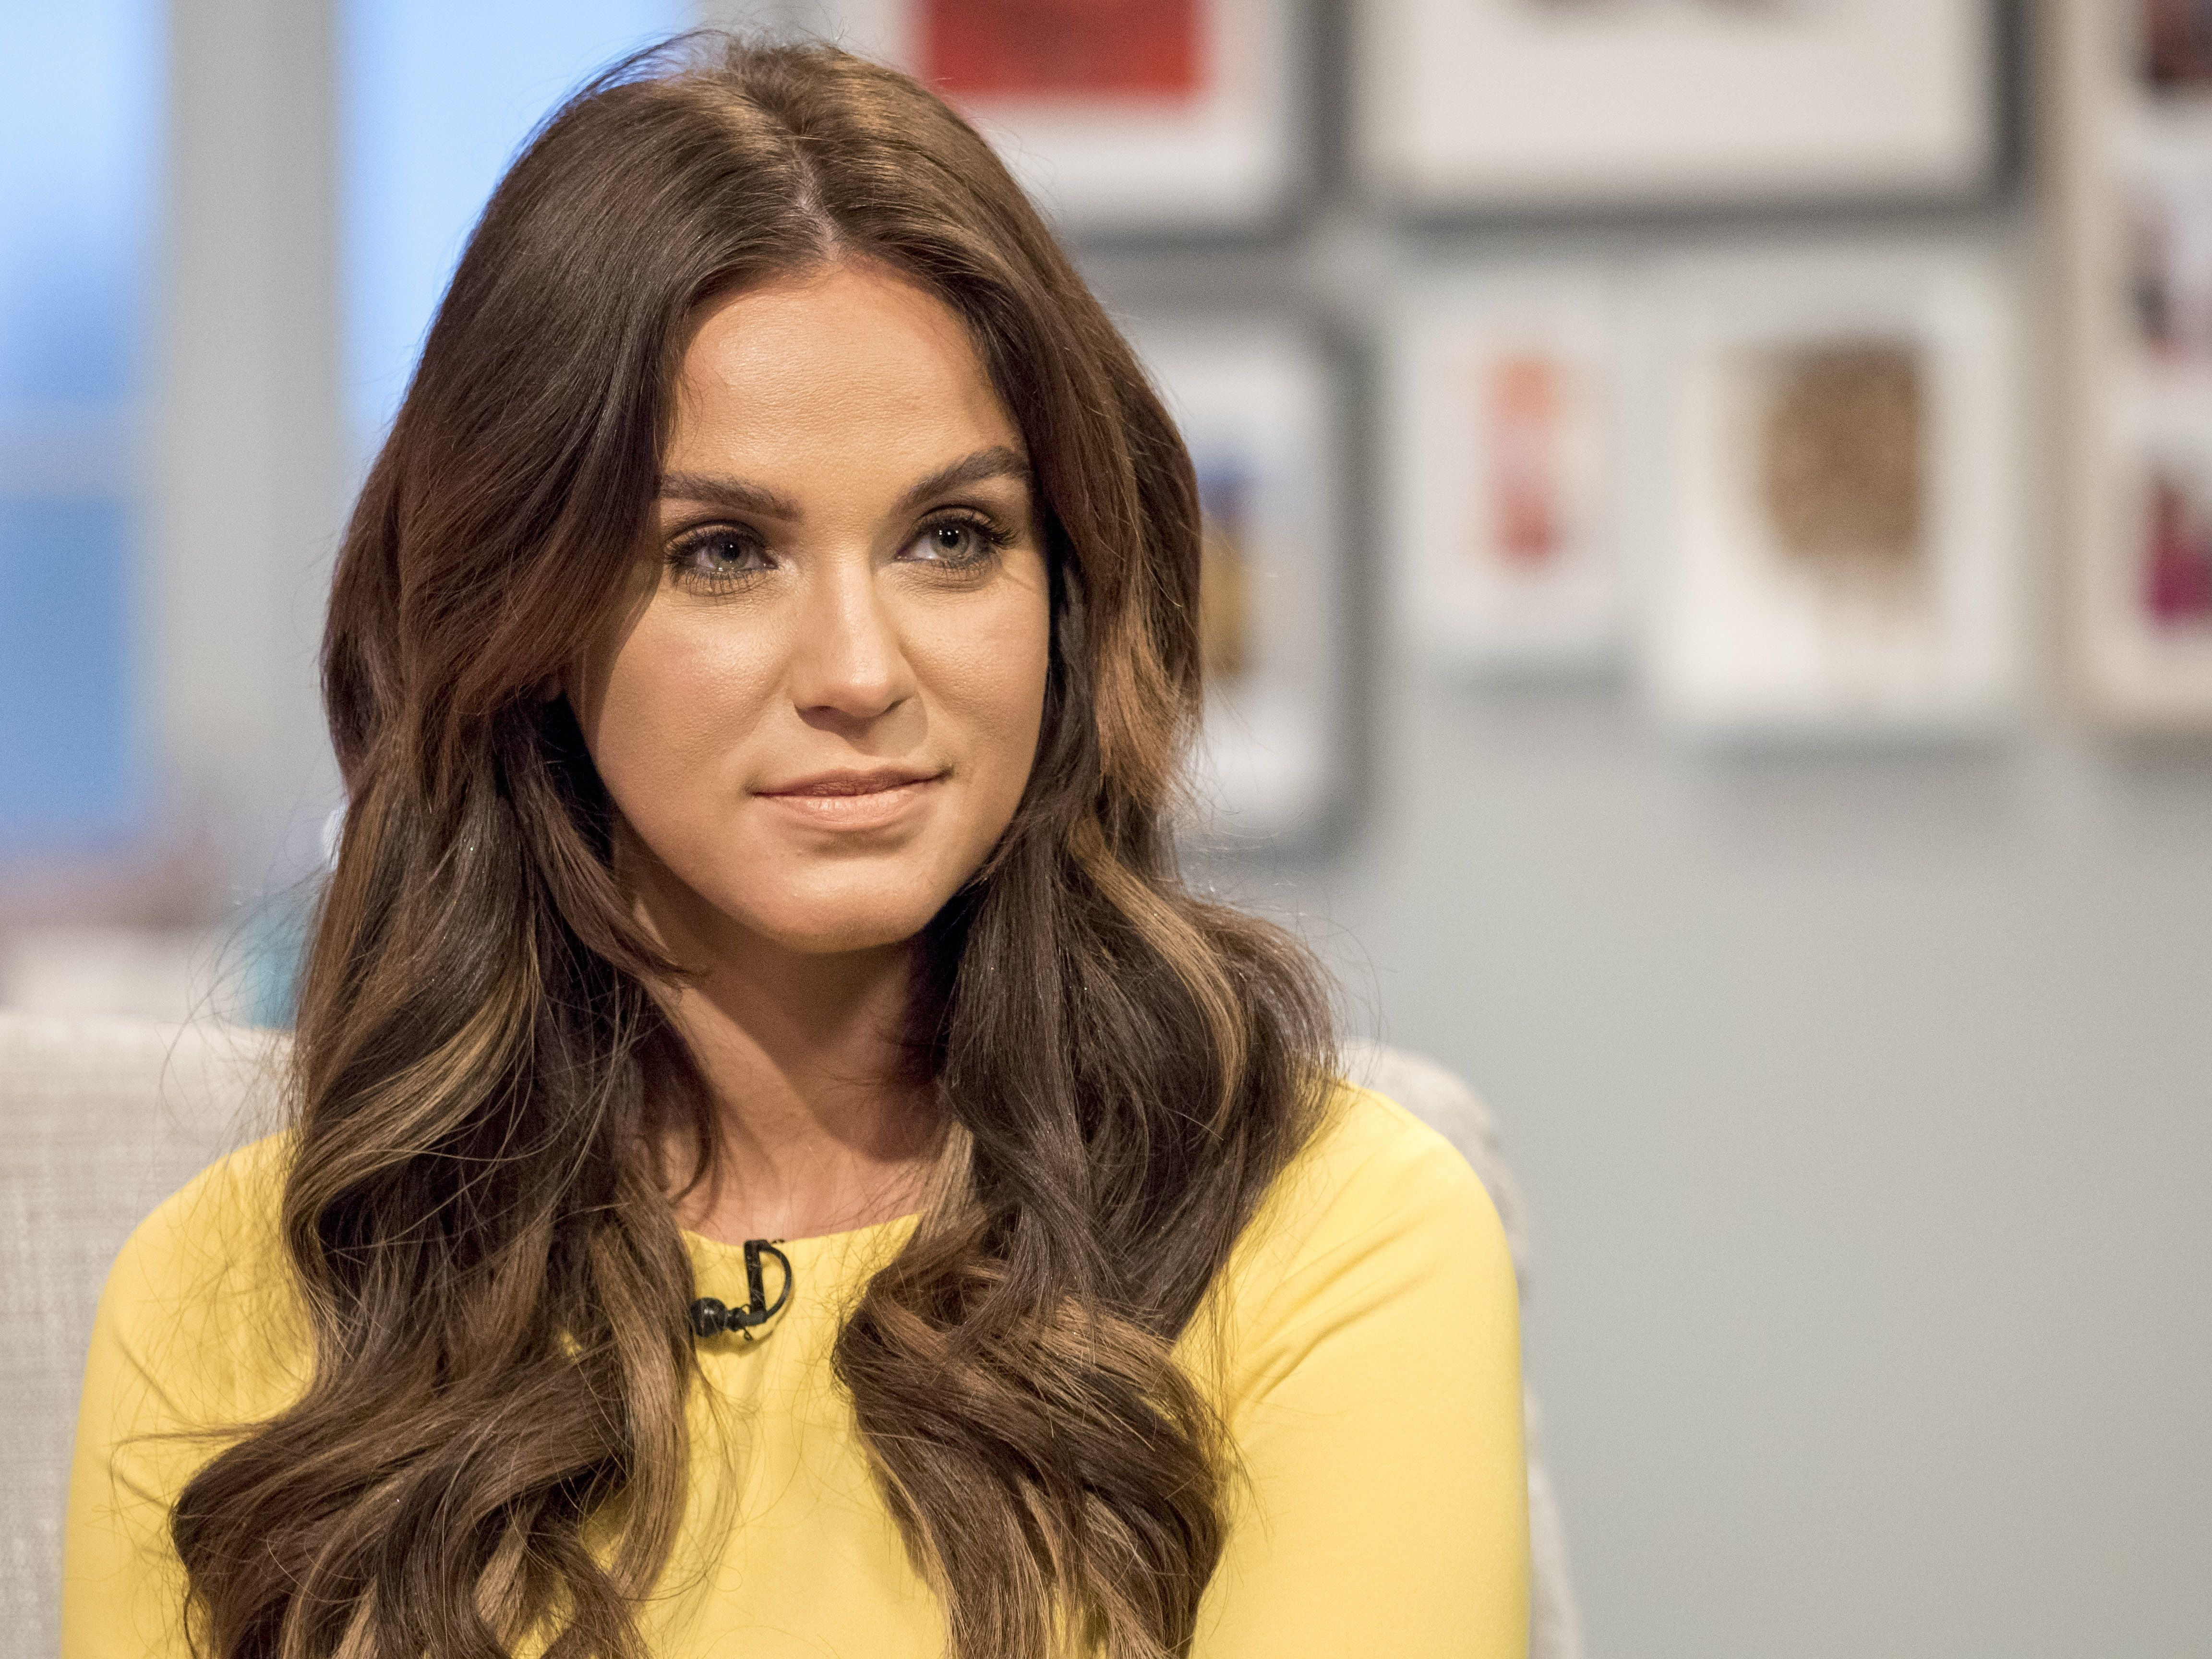 Vicky Pattison: 'Loose Women': Vicky Pattison Reveals The Real Reason She